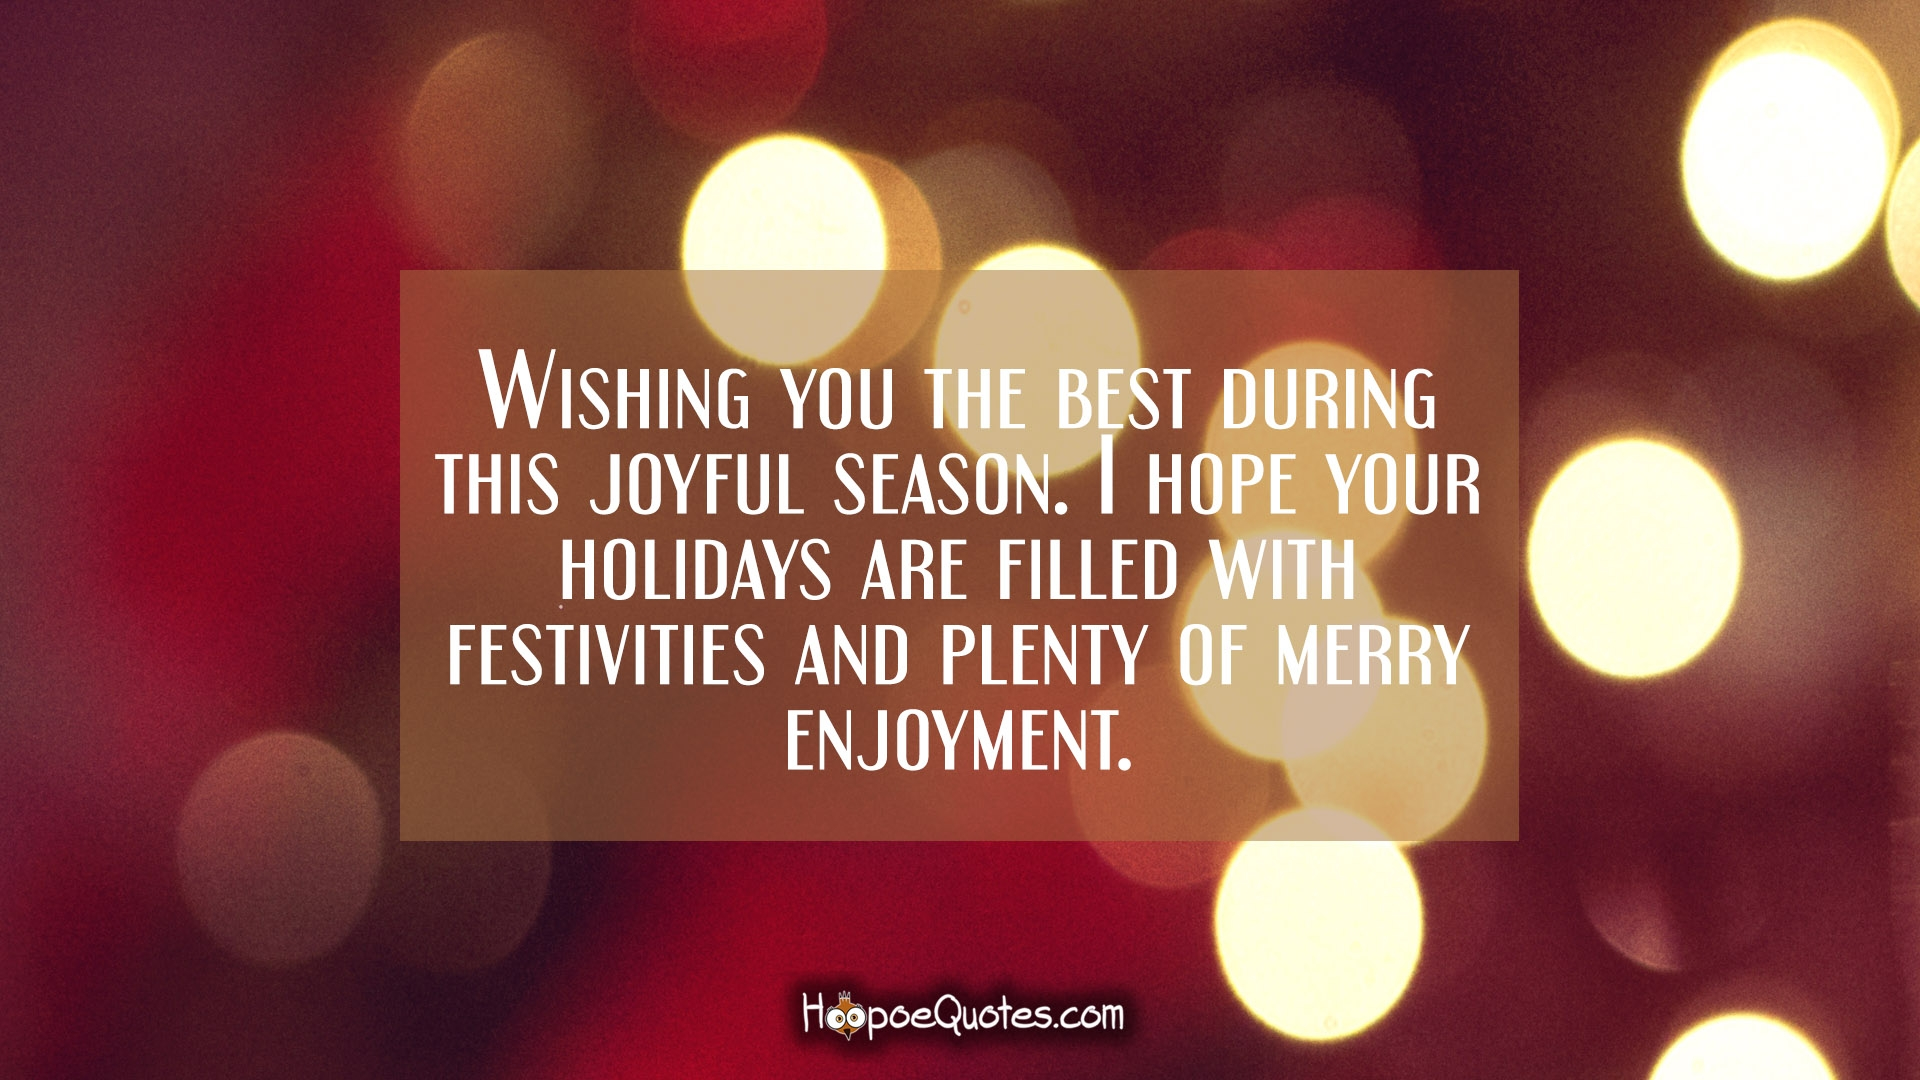 Merry Christmas Wishes - HoopoeQuotes - Results from #20